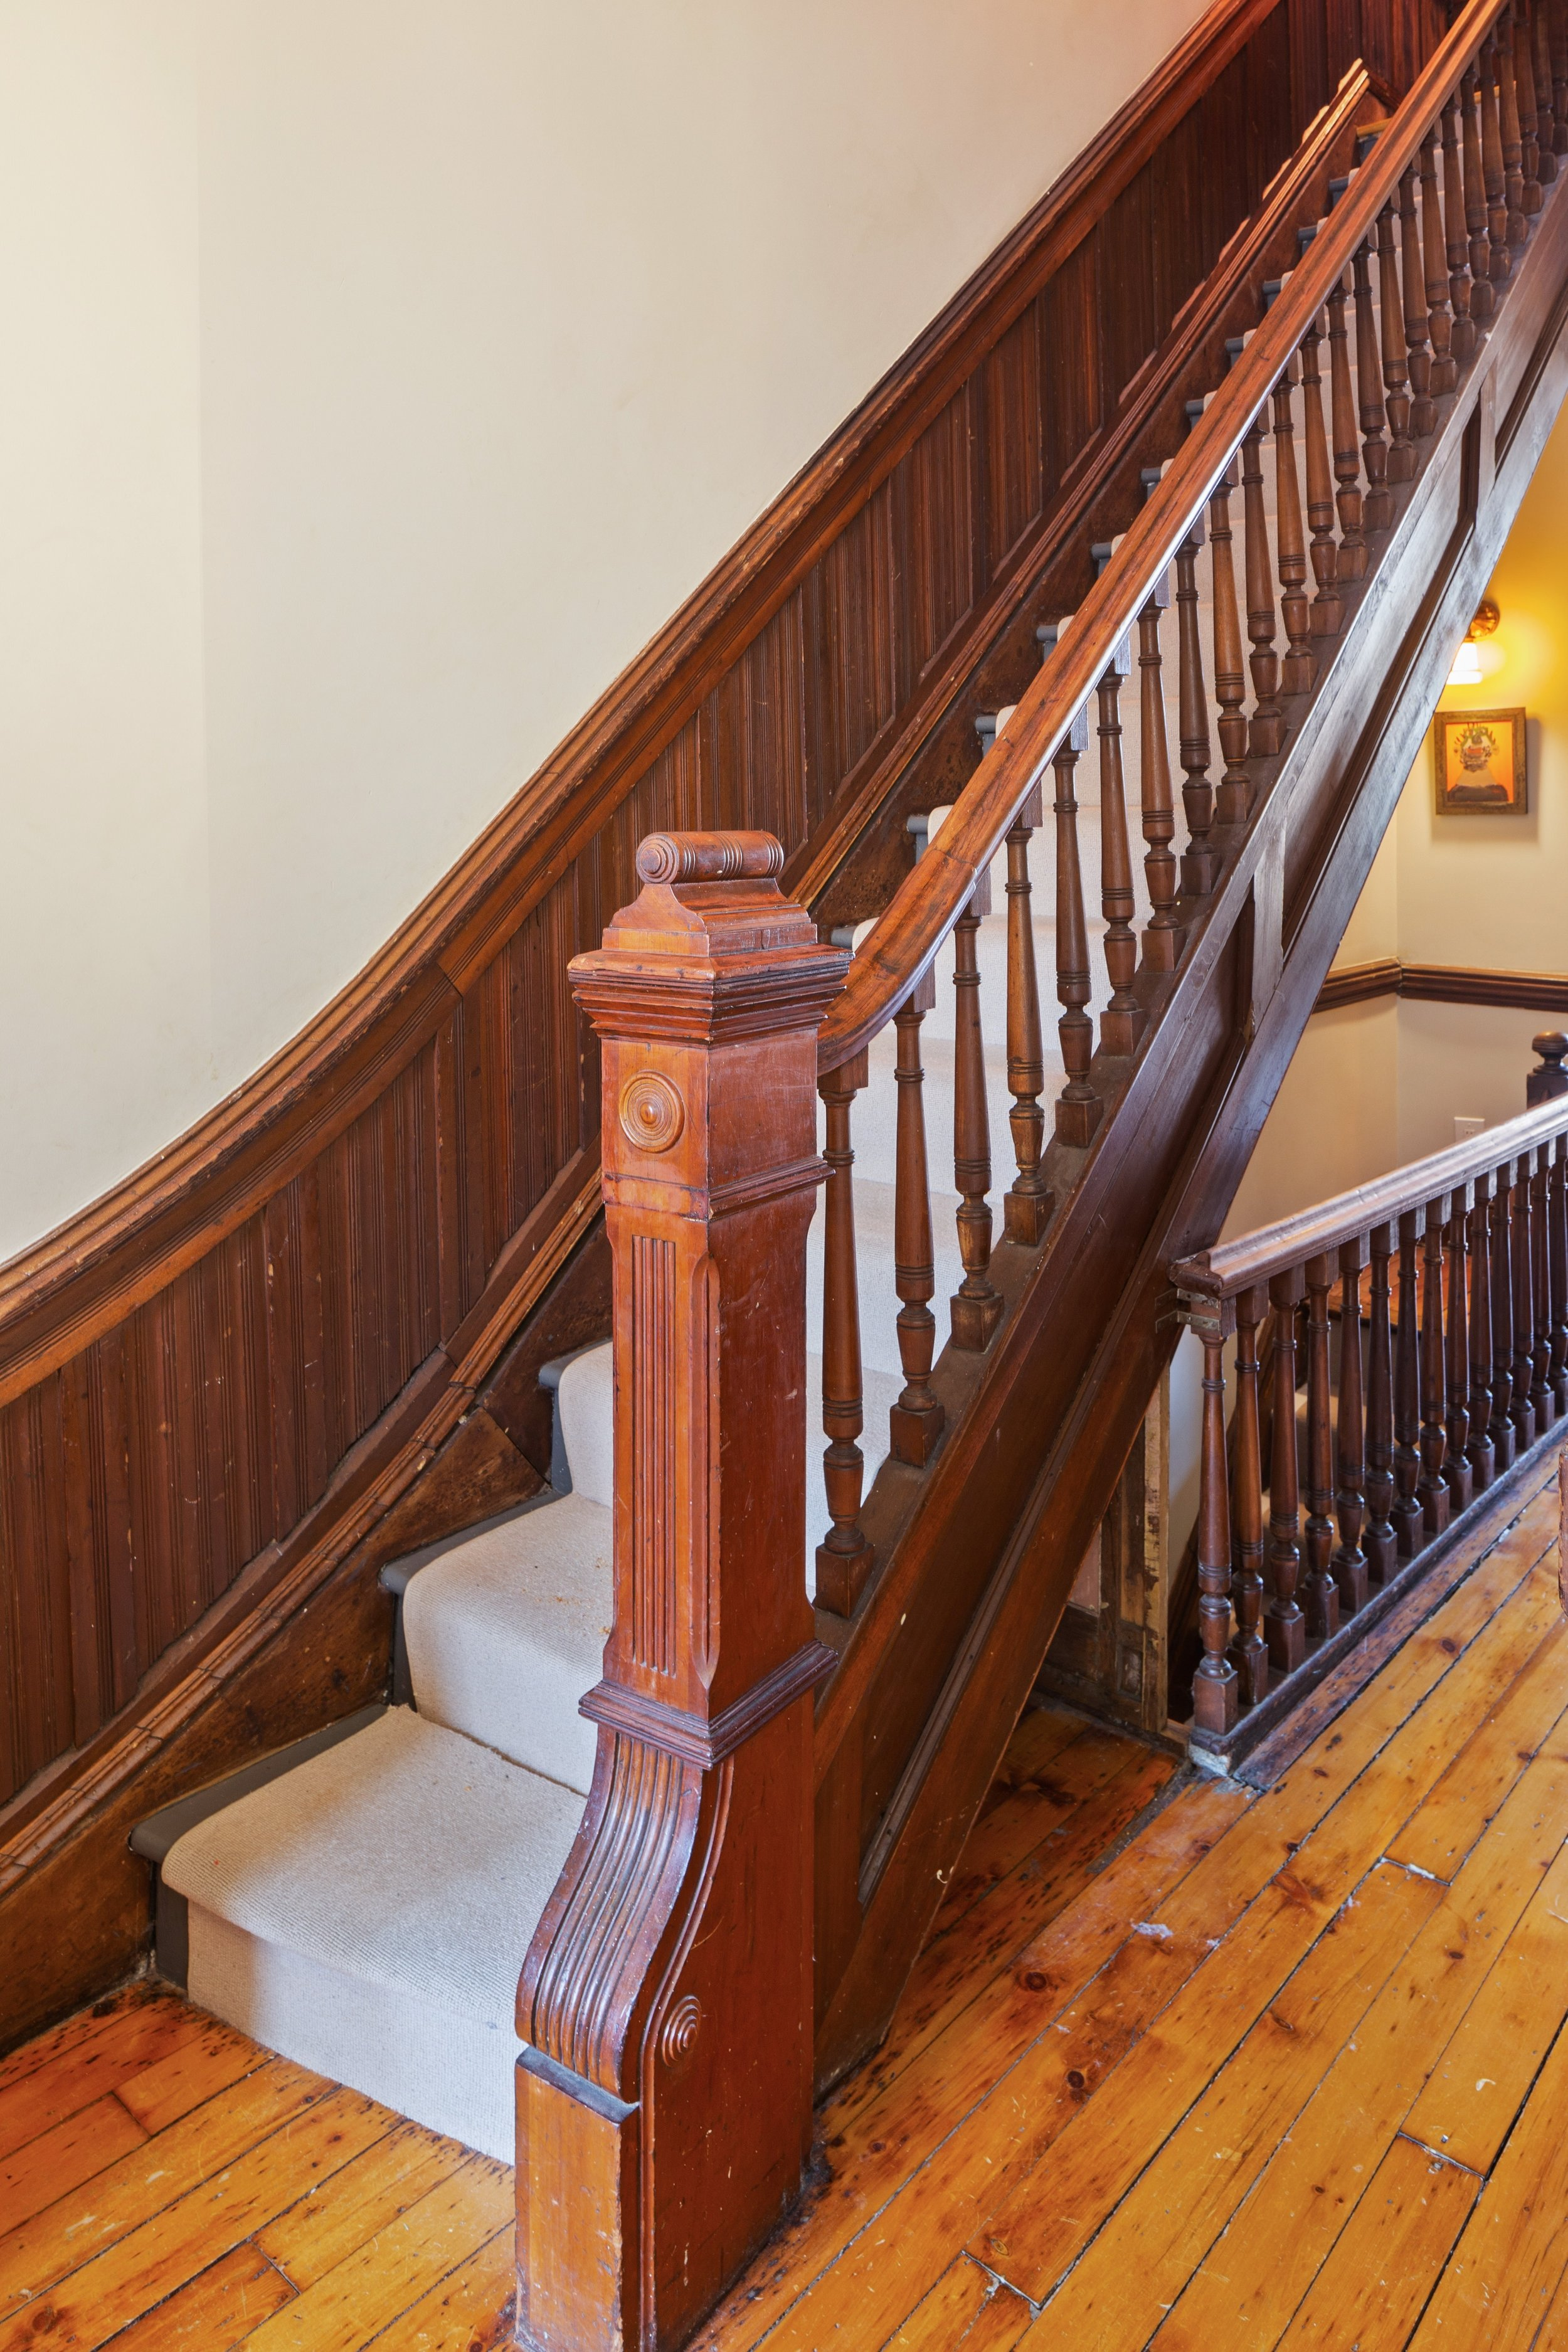 08_151WilloughbyAve_68_Staircase_HiRes.jpg